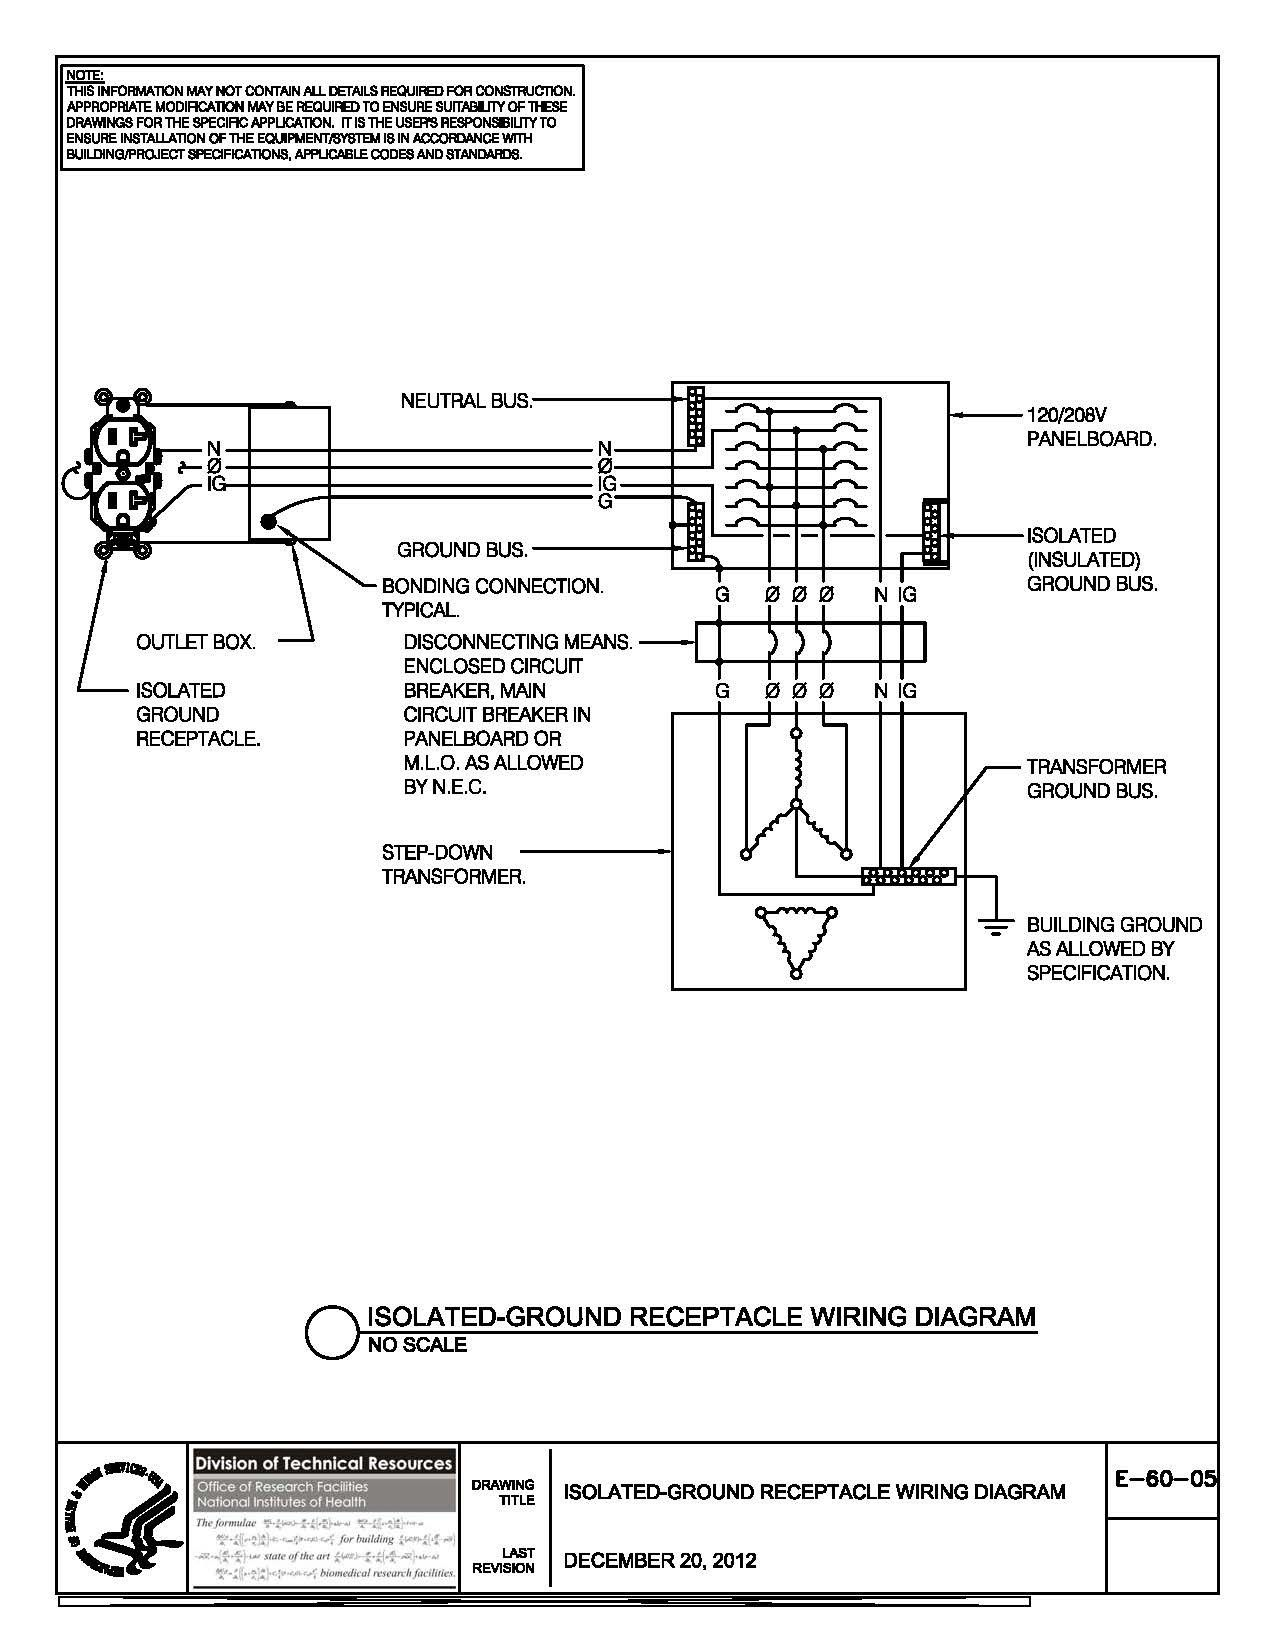 21 Good Electrical Wiring Diagrams For Dummies Pdf Technique